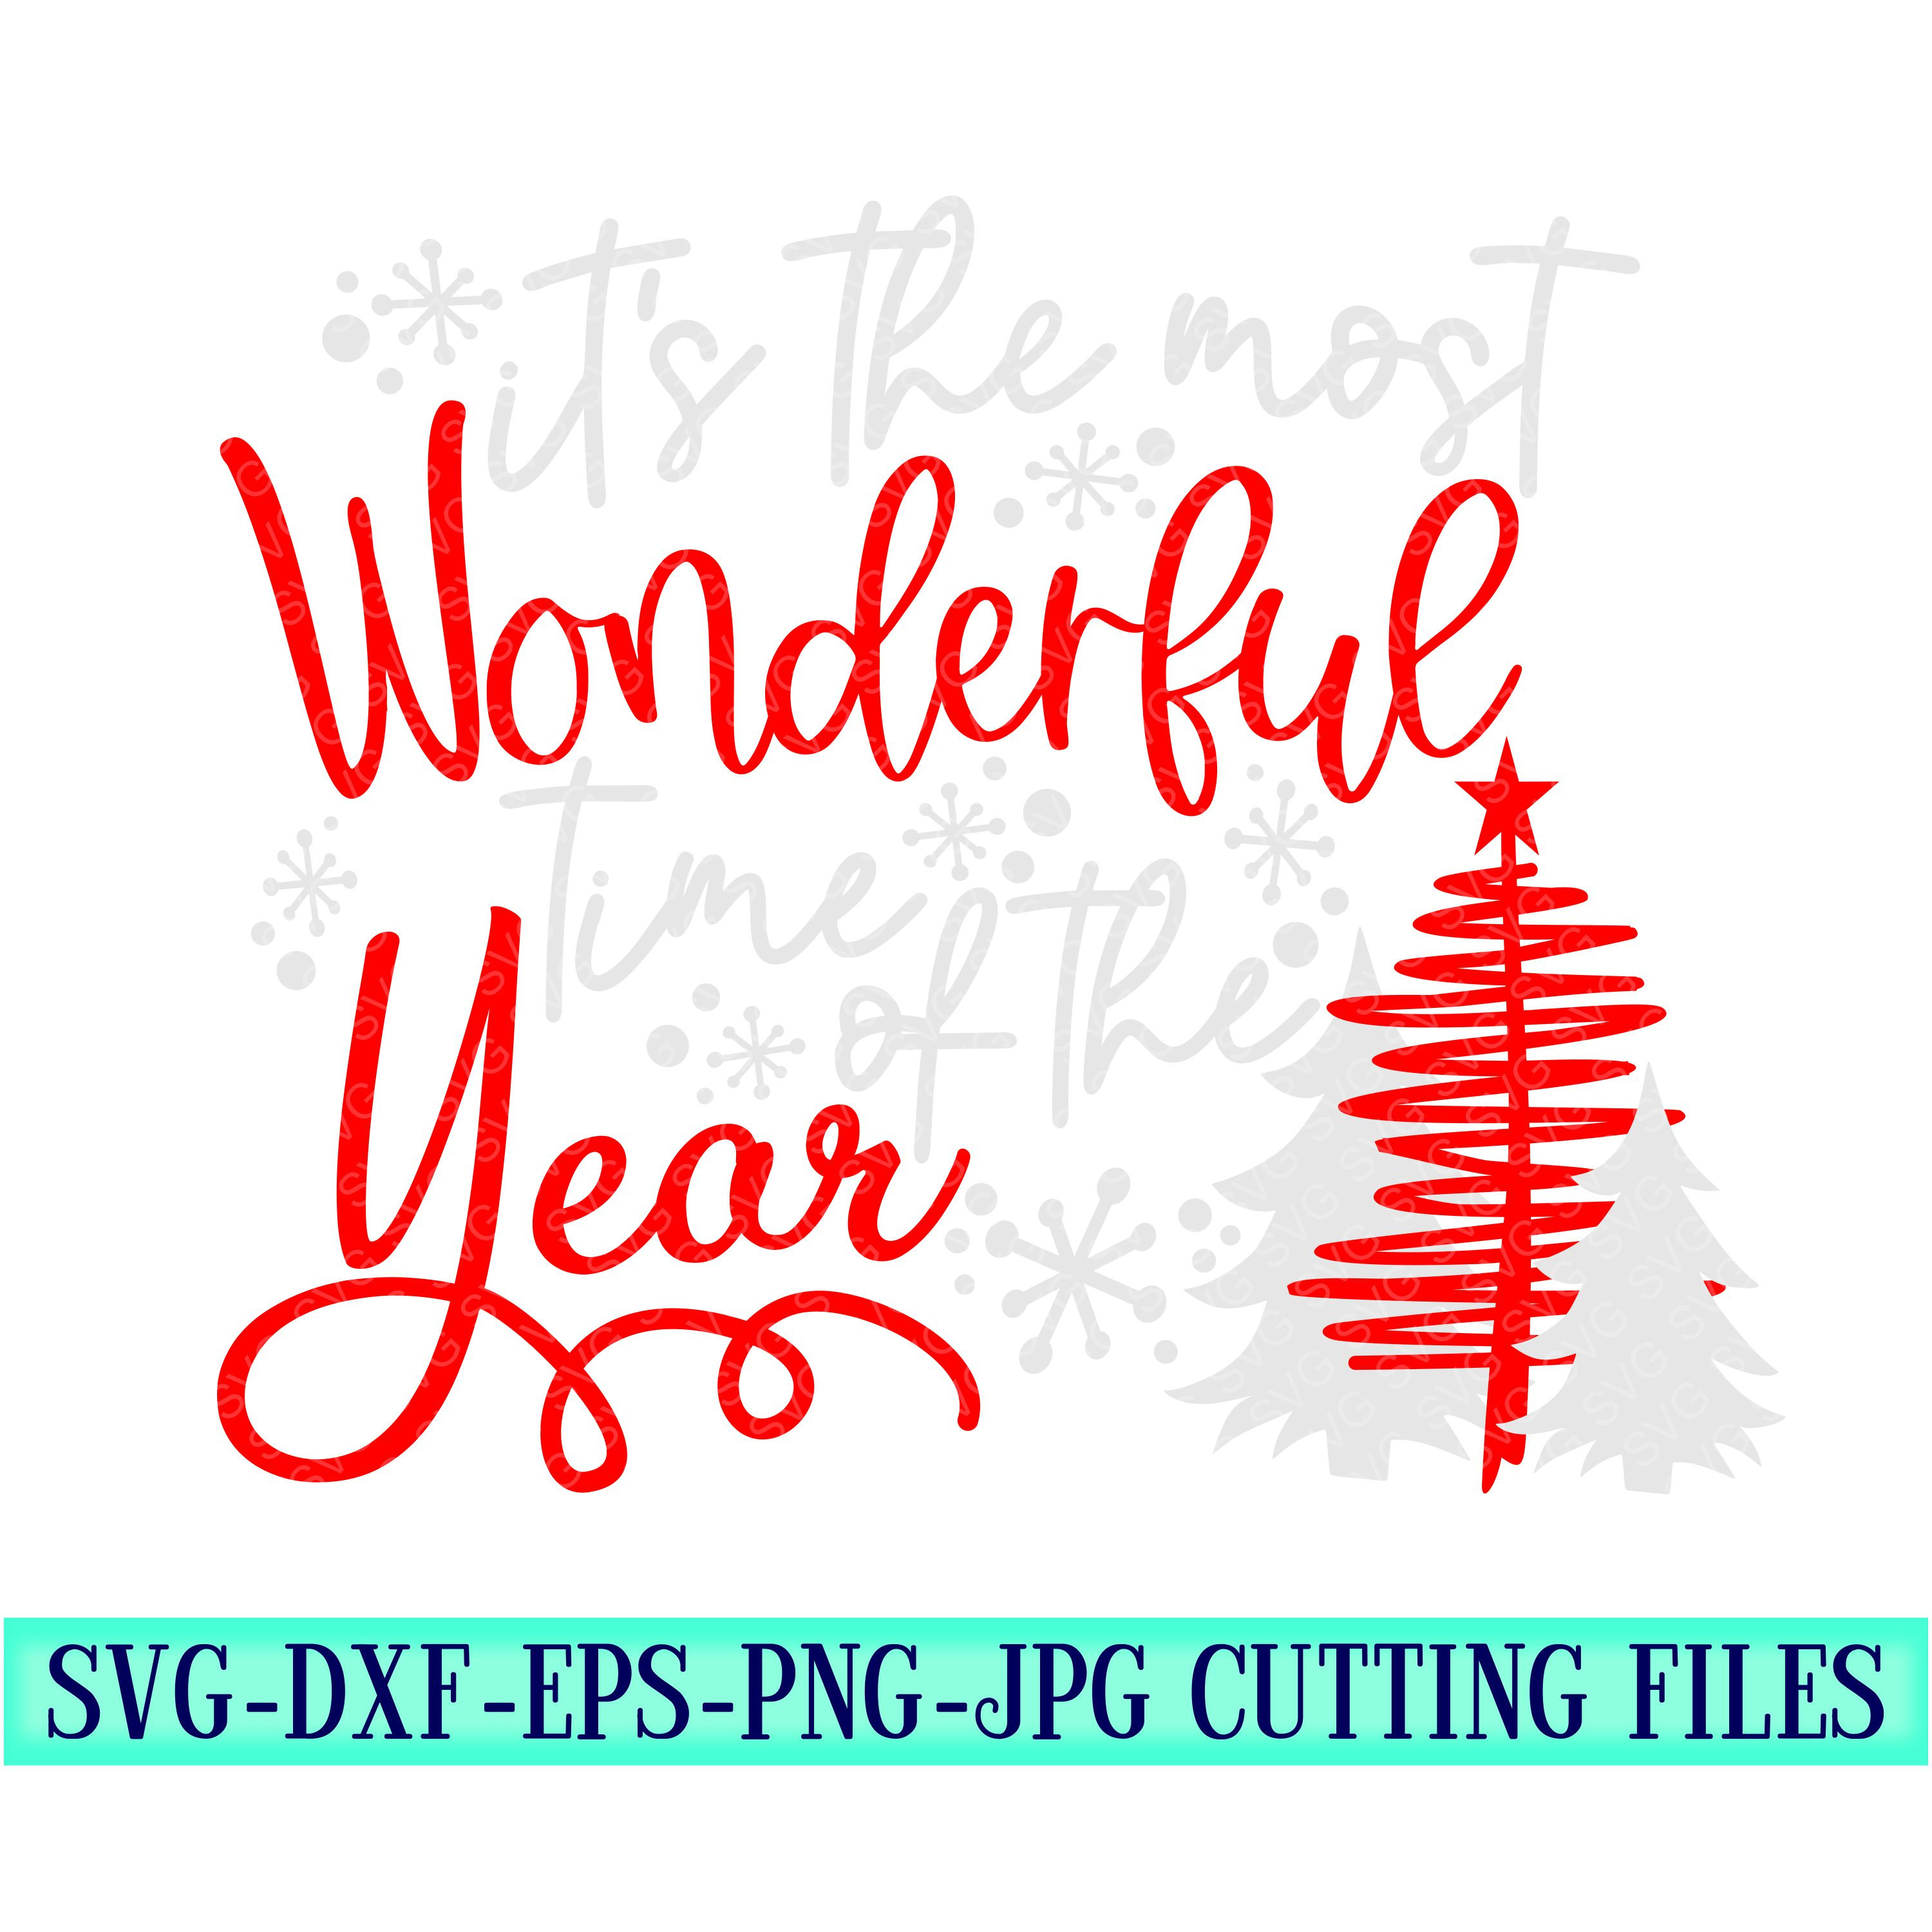 Wonderful-time-of-the-year-svg-christmas-tree-svg-snowflake-svg-christmas-svg-designs-christmas-cut-file-svg-for-cricut-5fa093ea